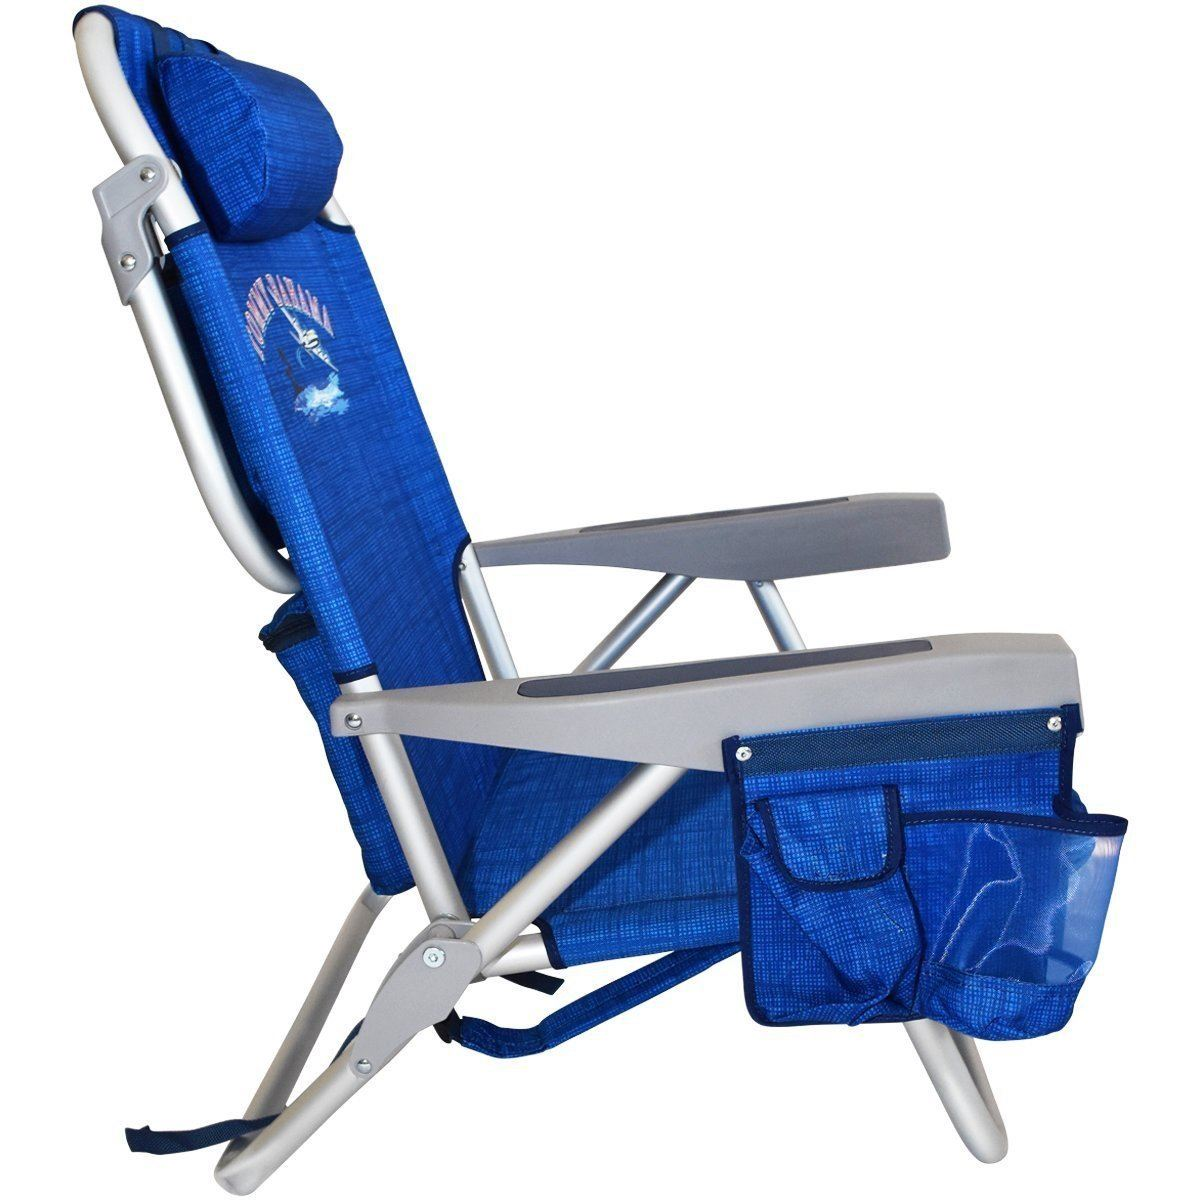 camping chairs cooler beach deck folding tommy recliner chair bahama backpack itm